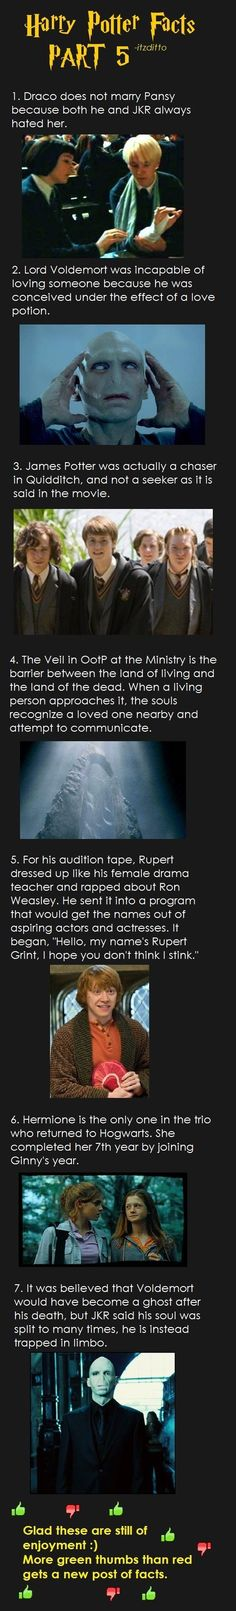 Harry Potter Facts Part 5 - Hogwarts Harry Potter Love, Harry Potter Universal, Harry Potter Fandom, Harry Potter World, Harry Potter Memes, James Potter, Funny Harry Potter Pics, Harry Potter Books, Hogwarts